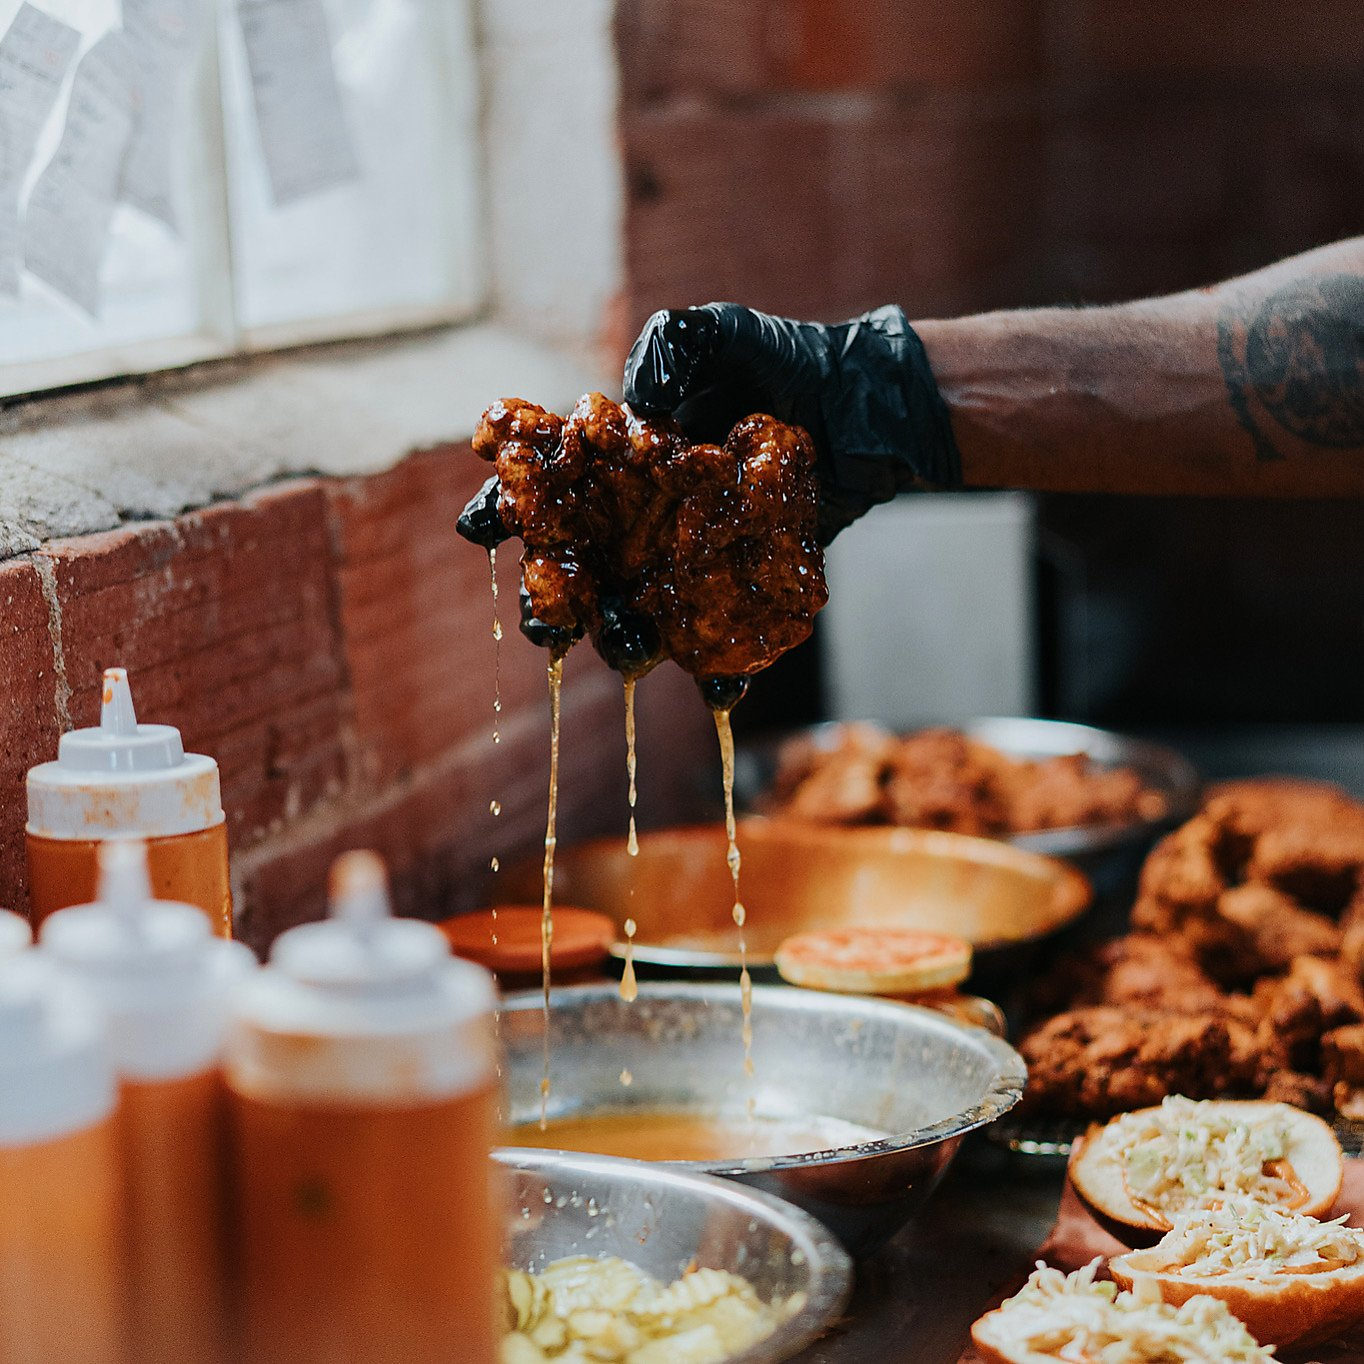 Bay Area barbecue prodigy Matt Horn debuts fried chicken sandwiches for KowBird